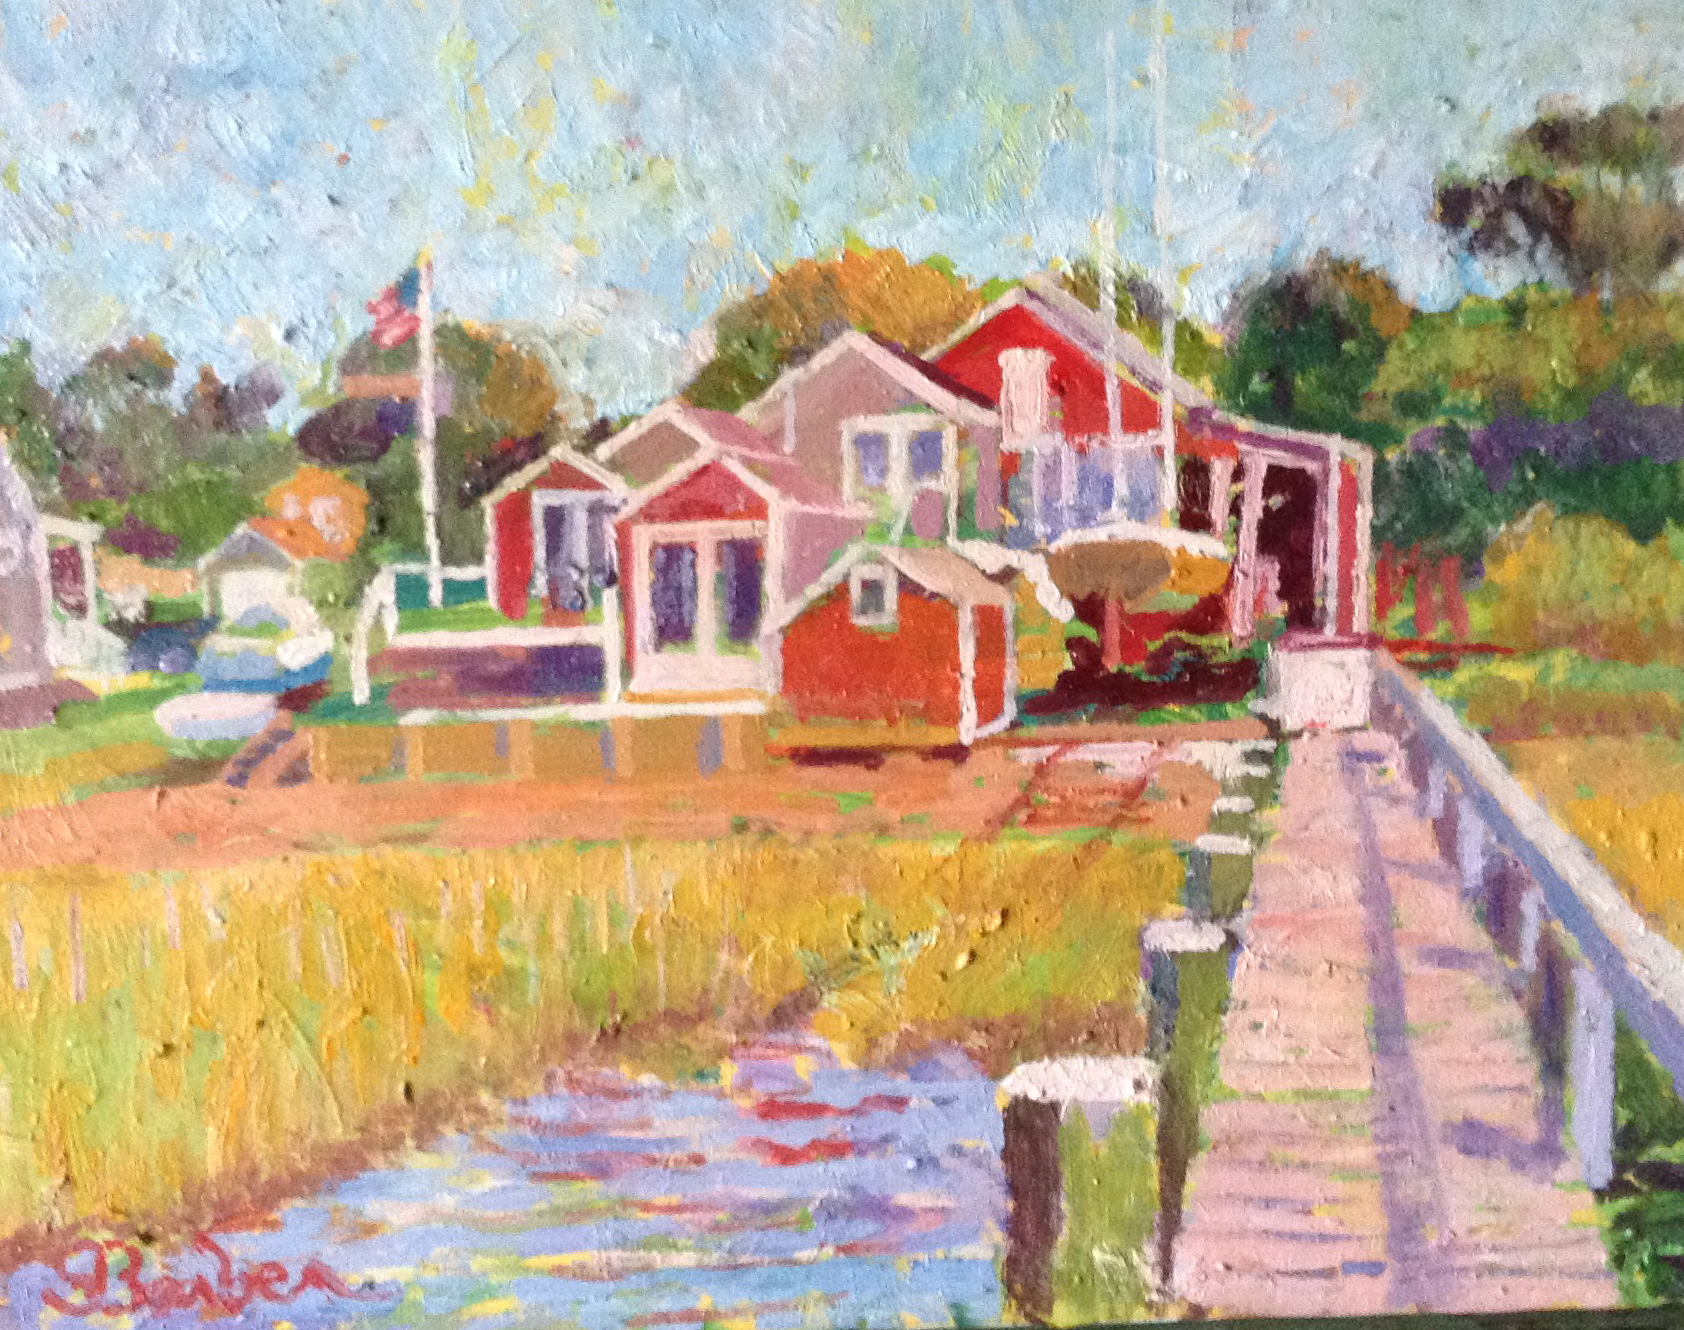 Stage Harbor Boatyard  | 11 x 14 |  Oil on canvas